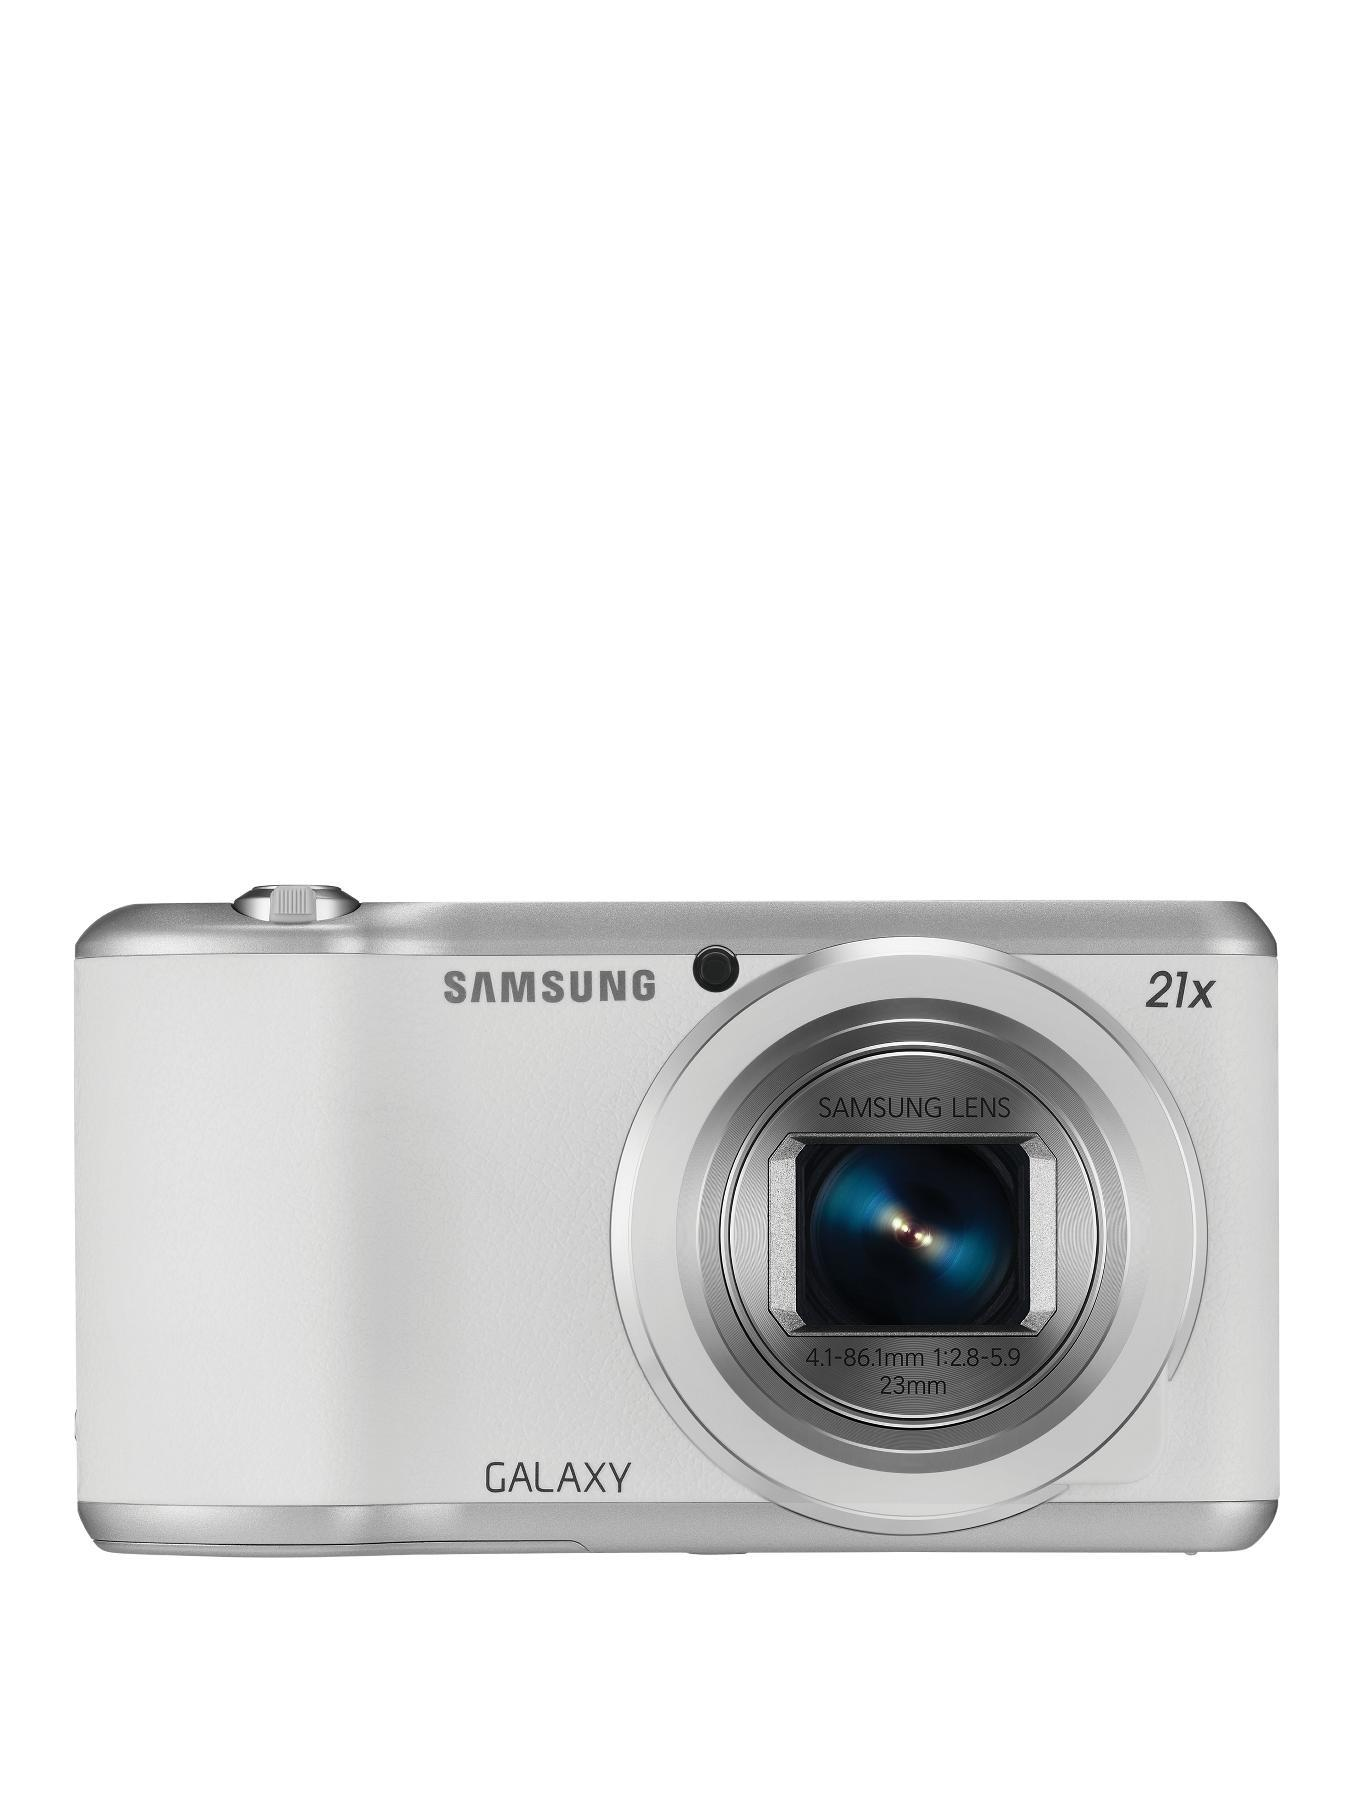 Galaxy 2 16 Megapixel Digital Camera, White,Black